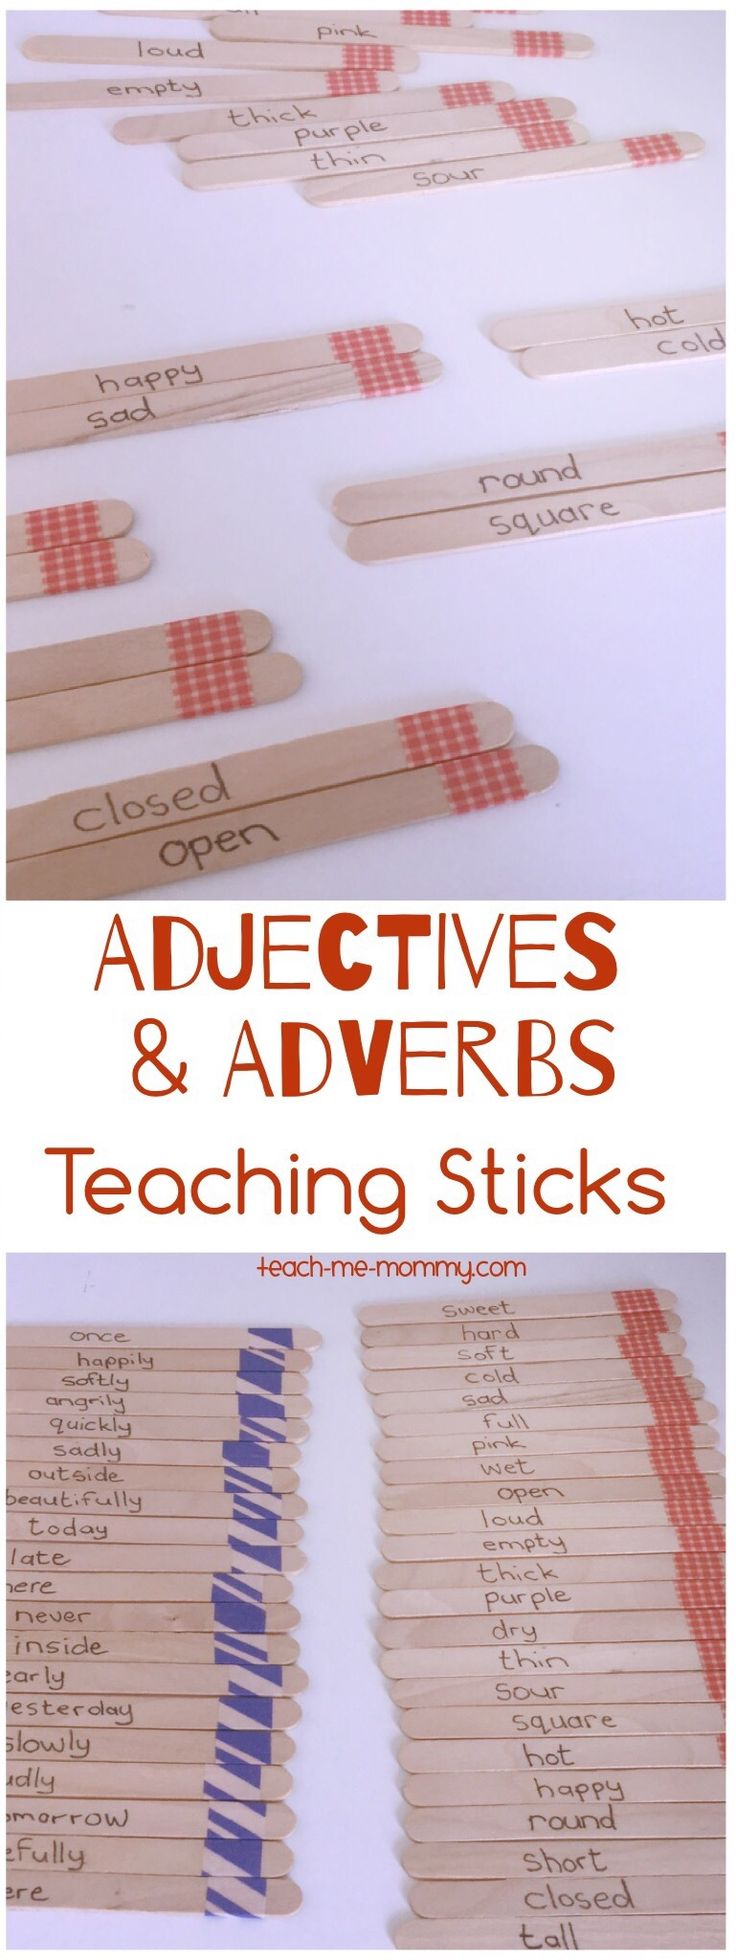 Adjectives and adverbs sticks